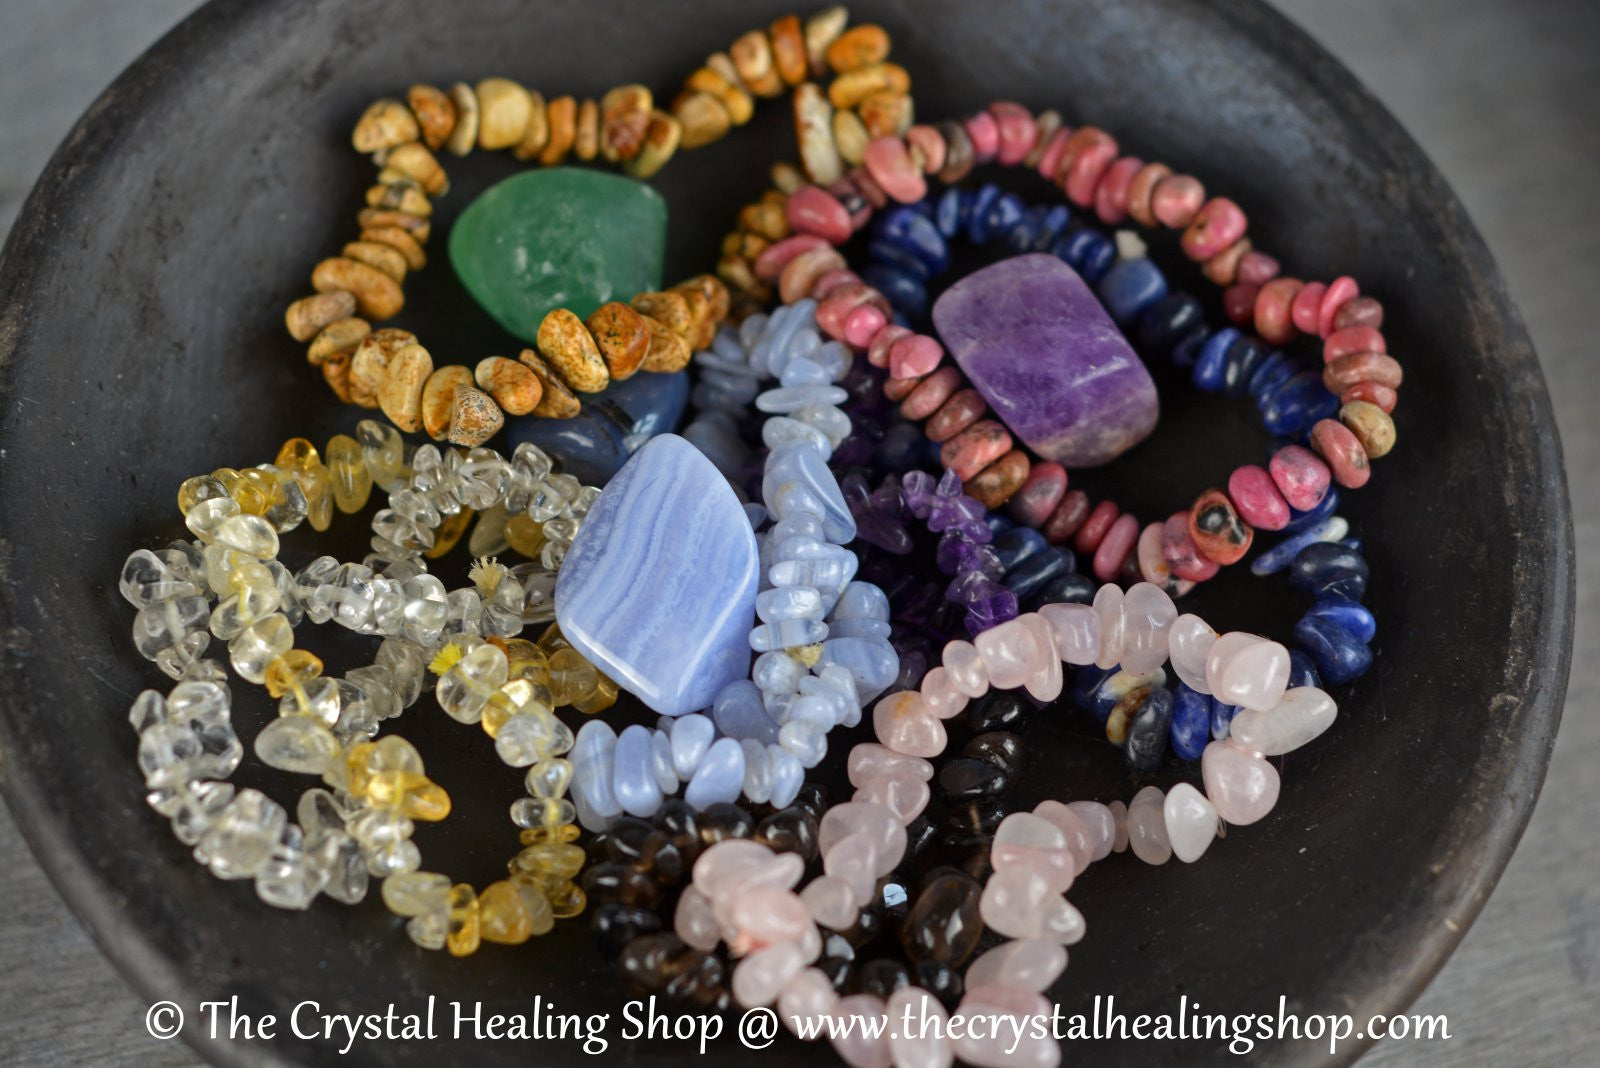 The Crystal Healing Shop - Ireland and UK - Healing Crystals